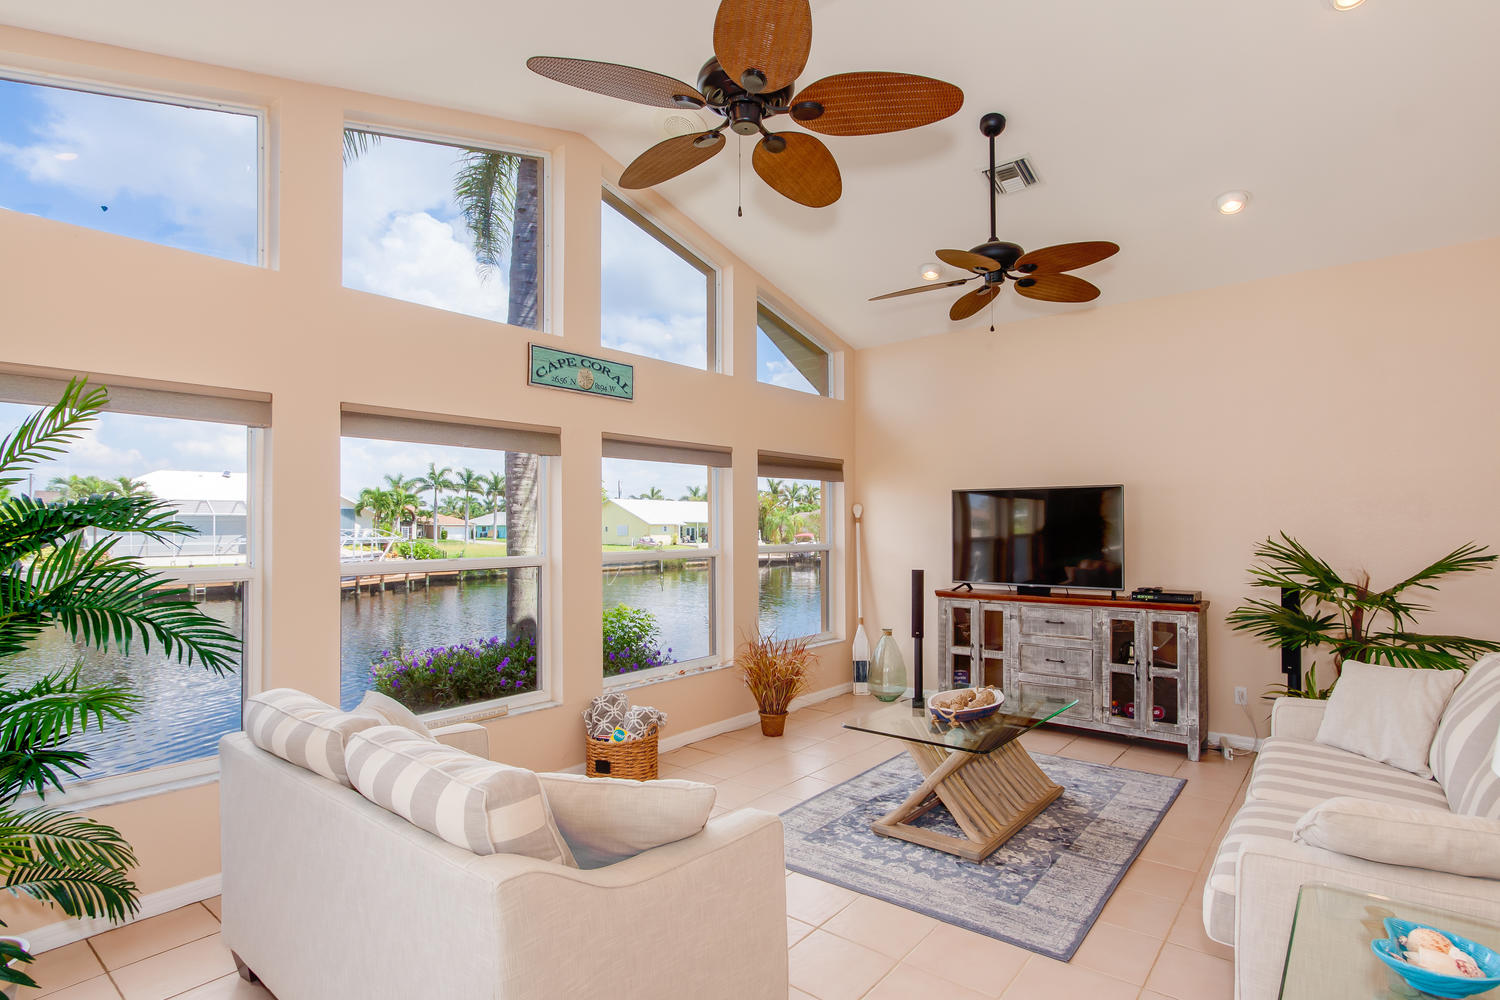 Cape Coral Vacation Home Discounts and Specials in Florida